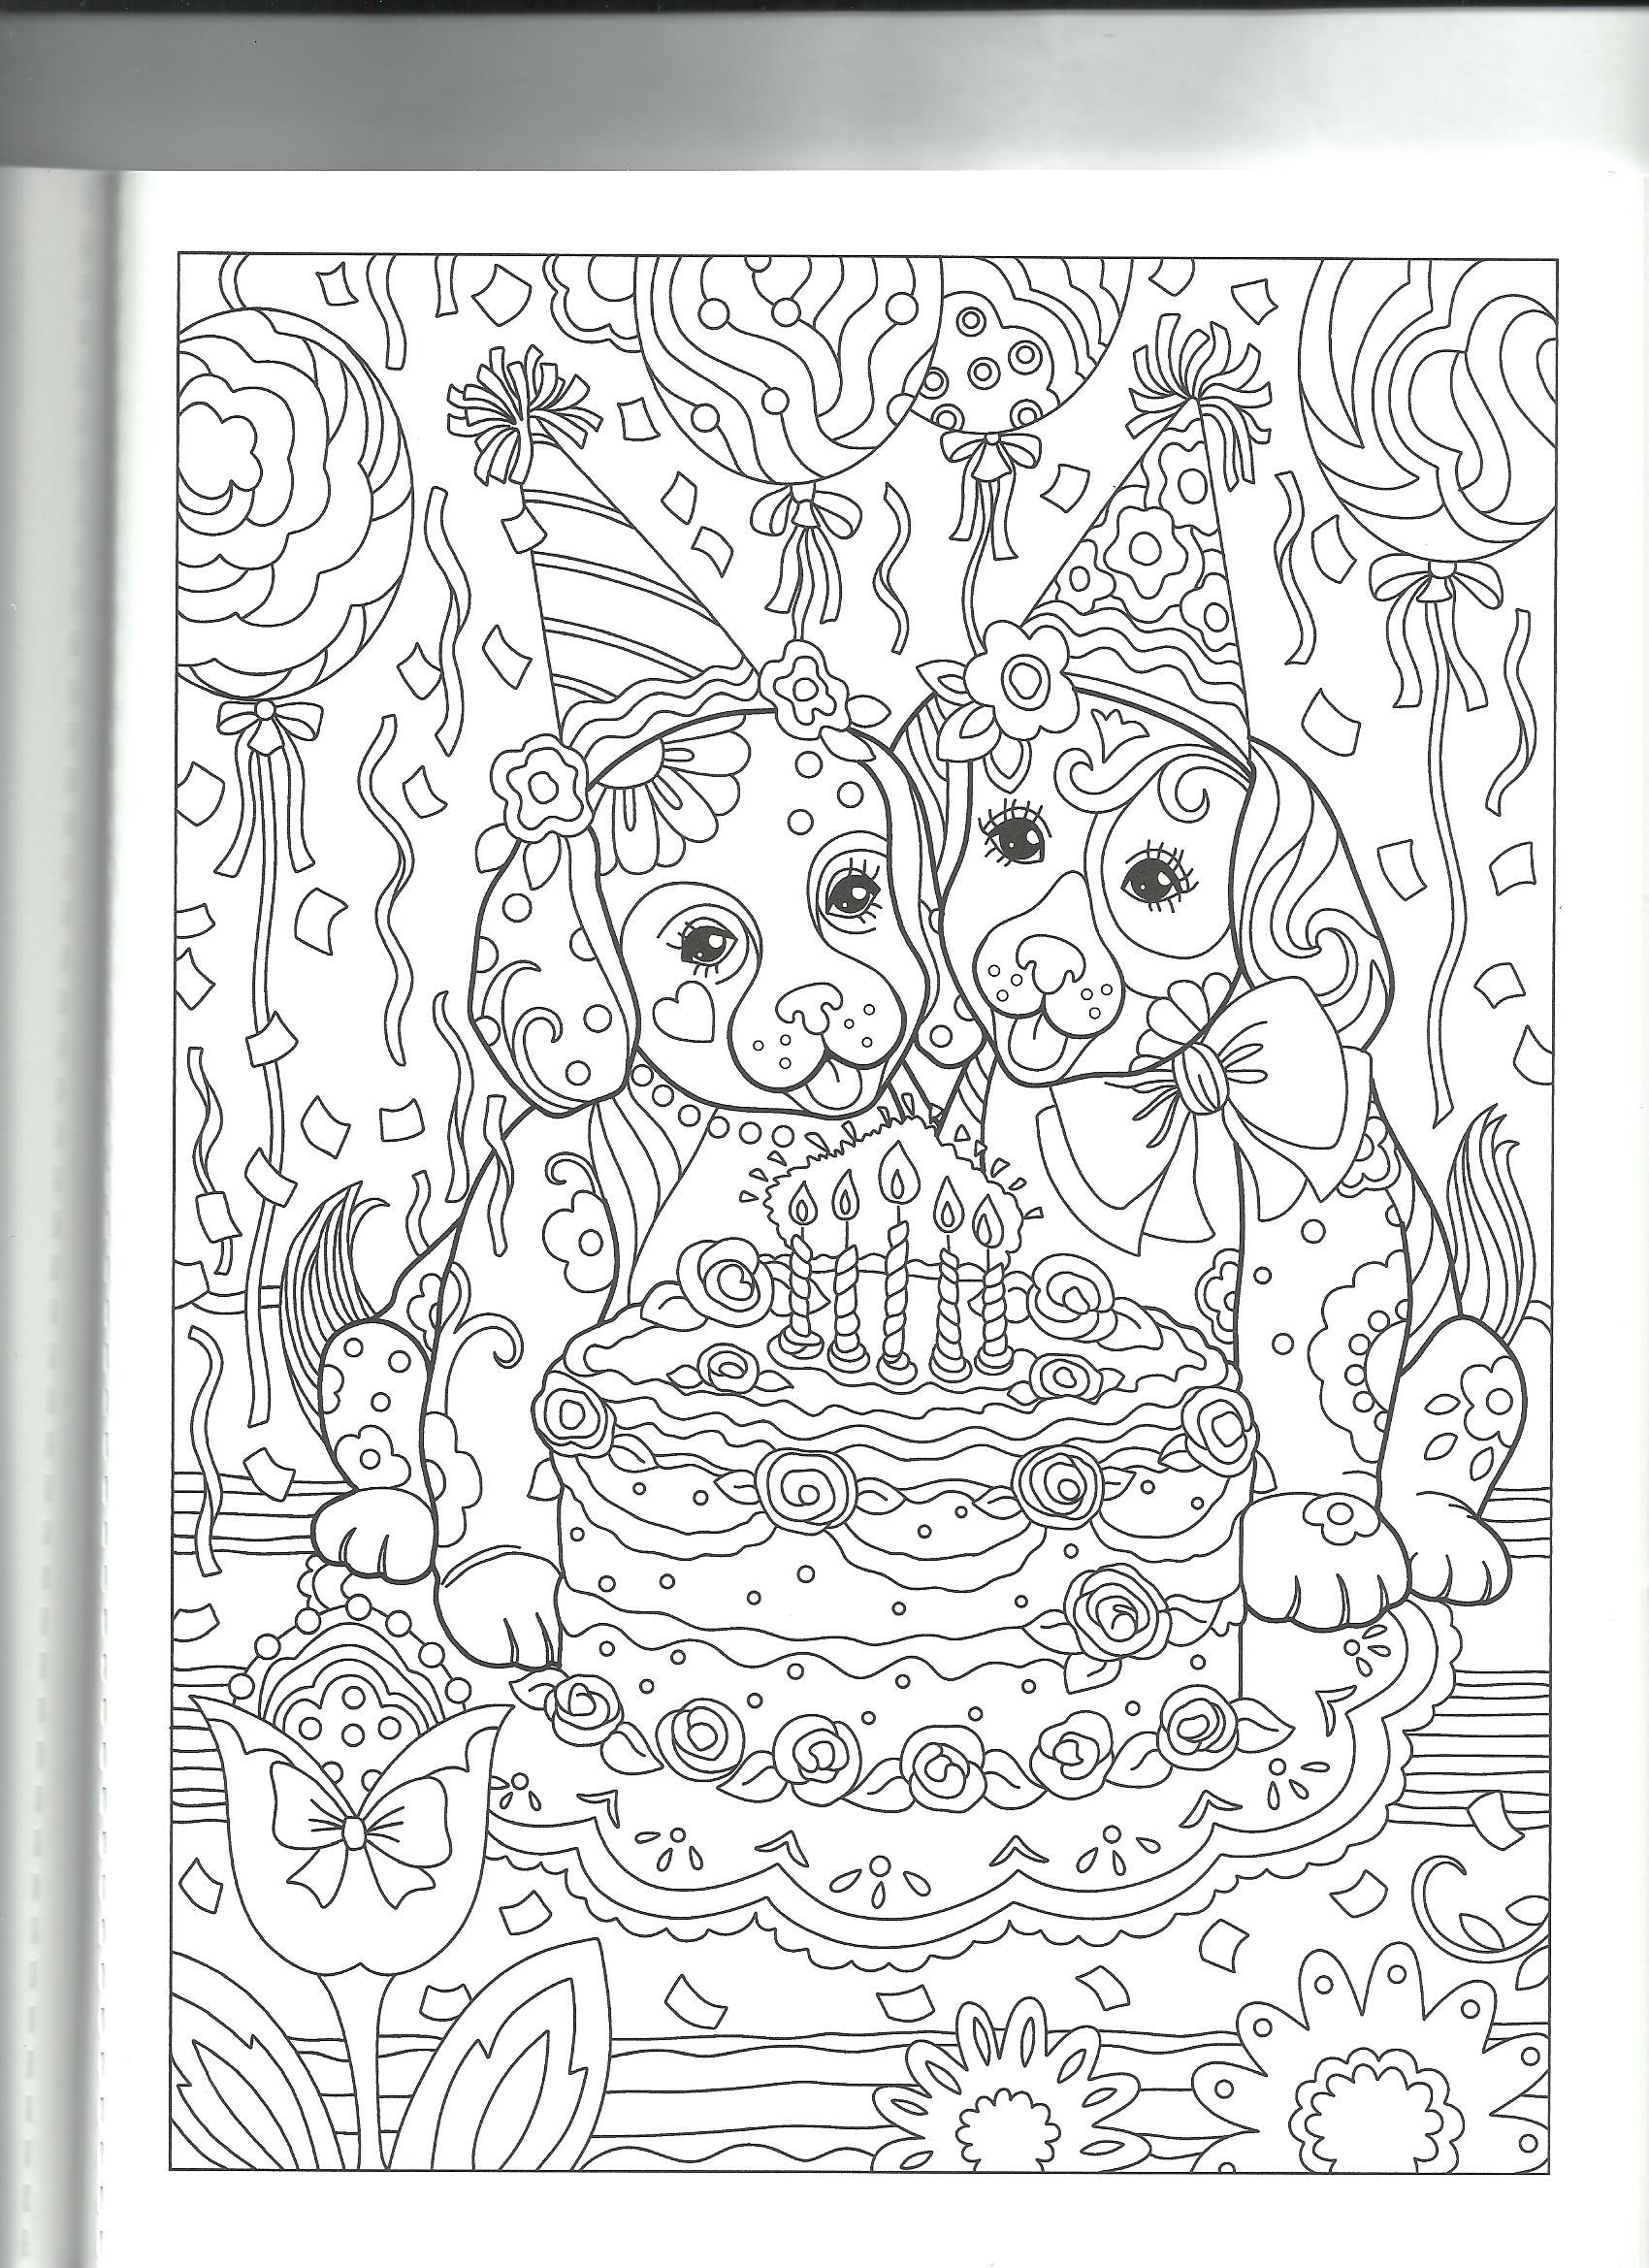 Puppies Birthday Coloring Page By Marjorie Sarnat Dog Coloring Book Skull Coloring Pages Cute Coloring Pages